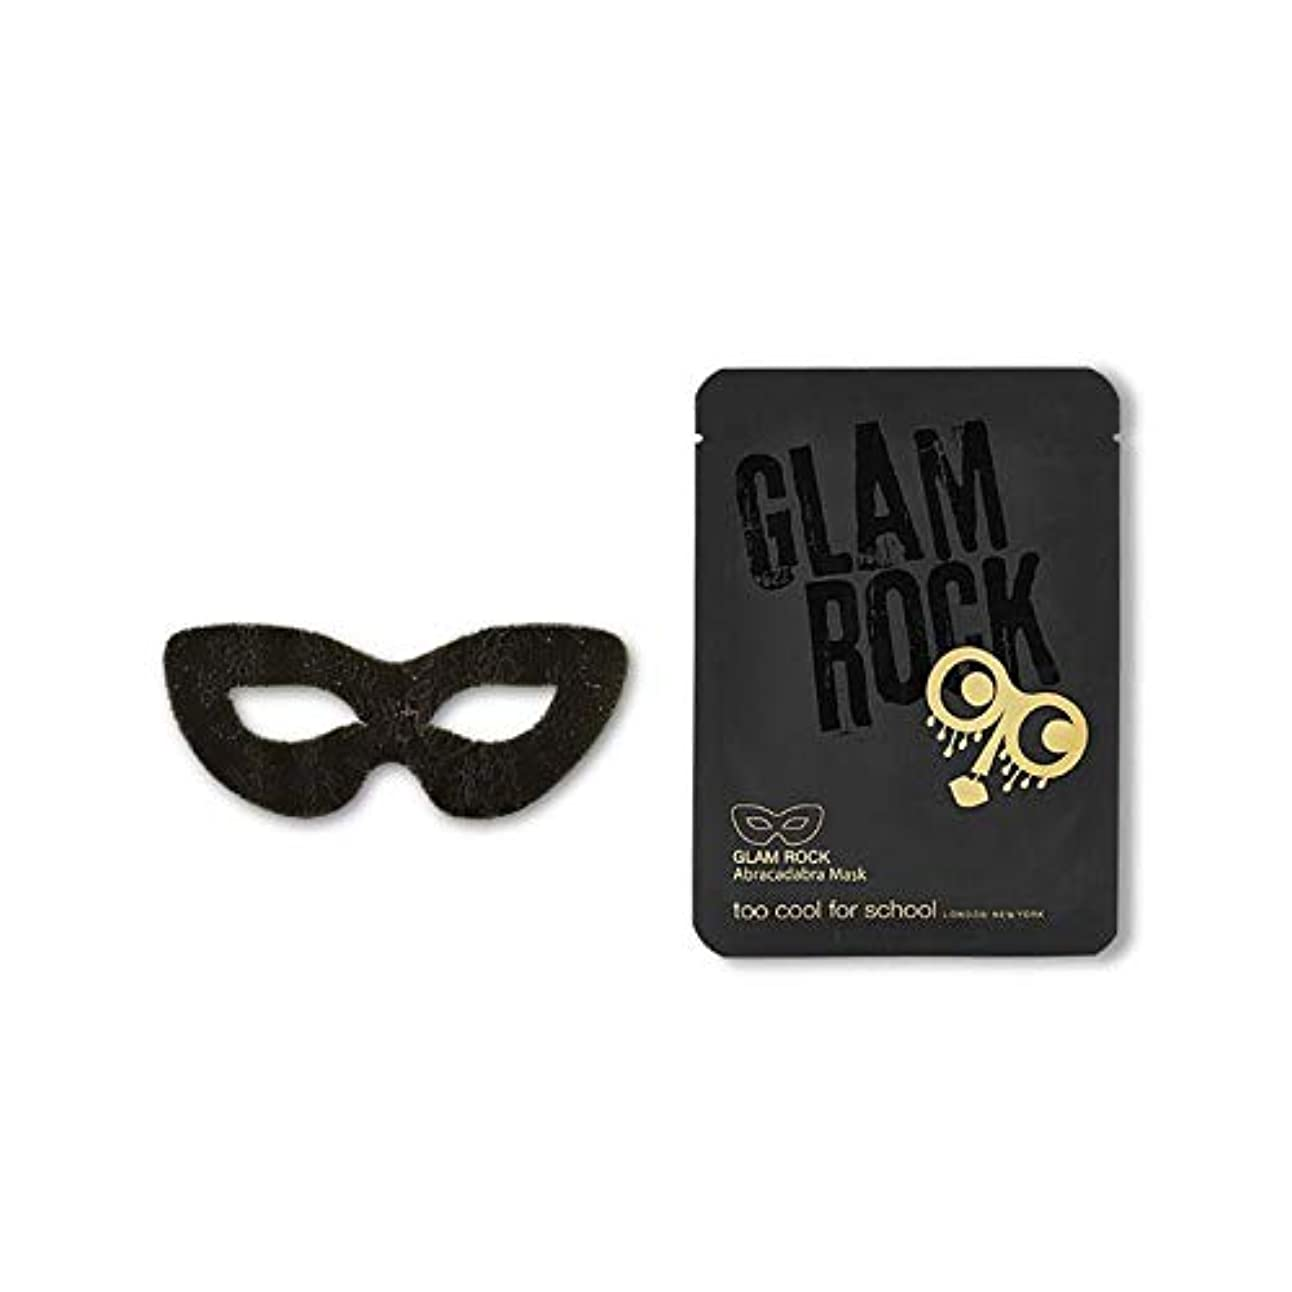 オーバーヘッド前売売るTOO COOL FOR SCHOOL Glam Rock Abracadabra Mask (並行輸入品)